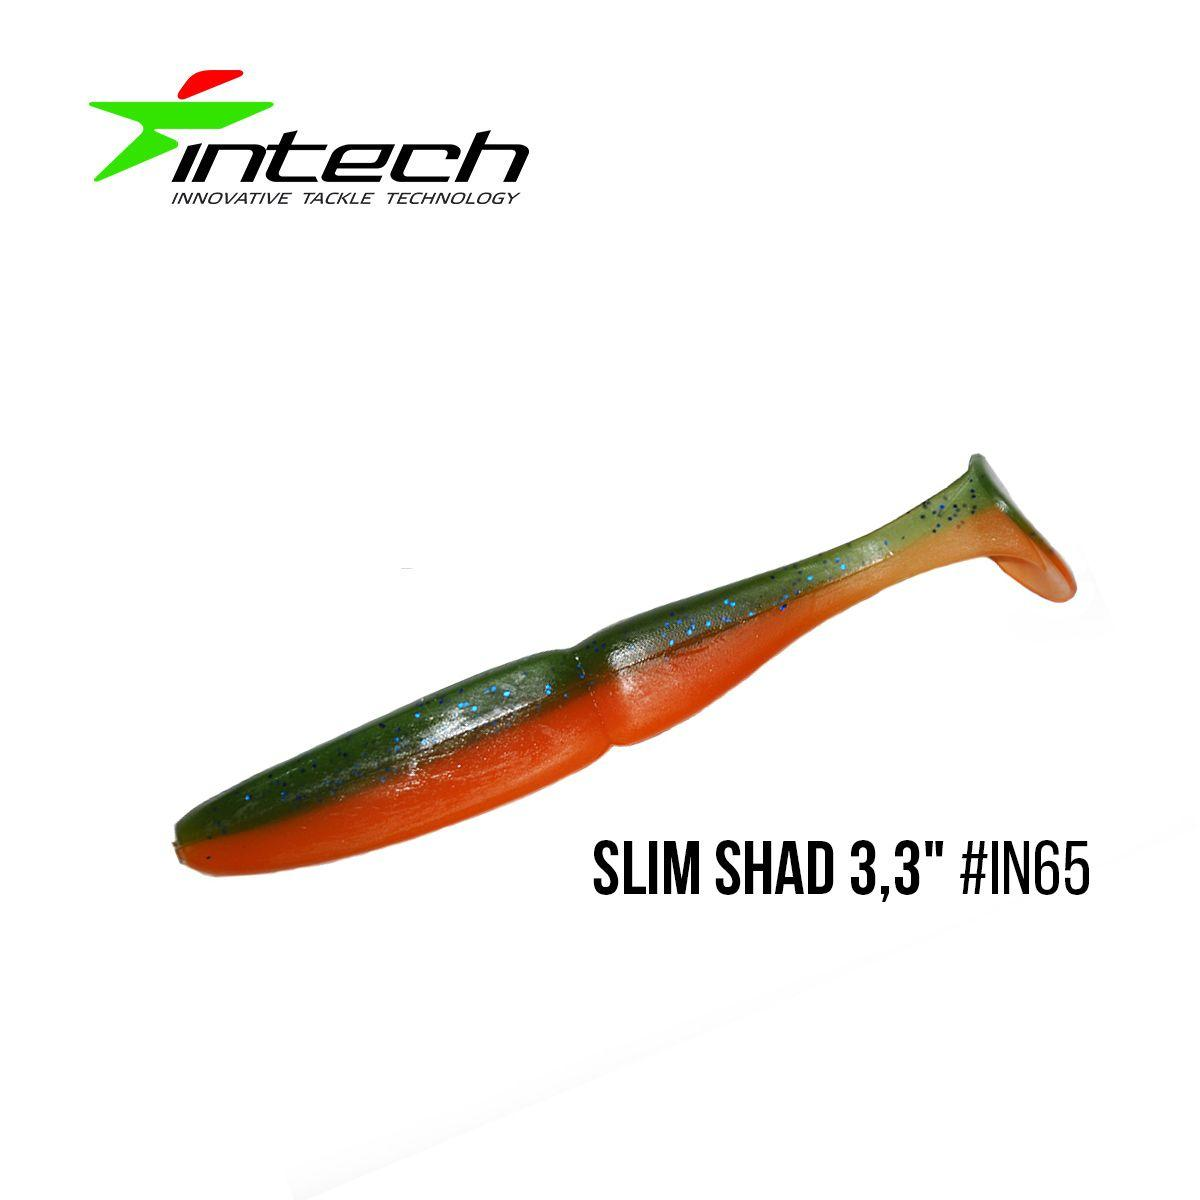 "Приманка Intech Slim Shad 3,3""(7 шт) (IN65)"